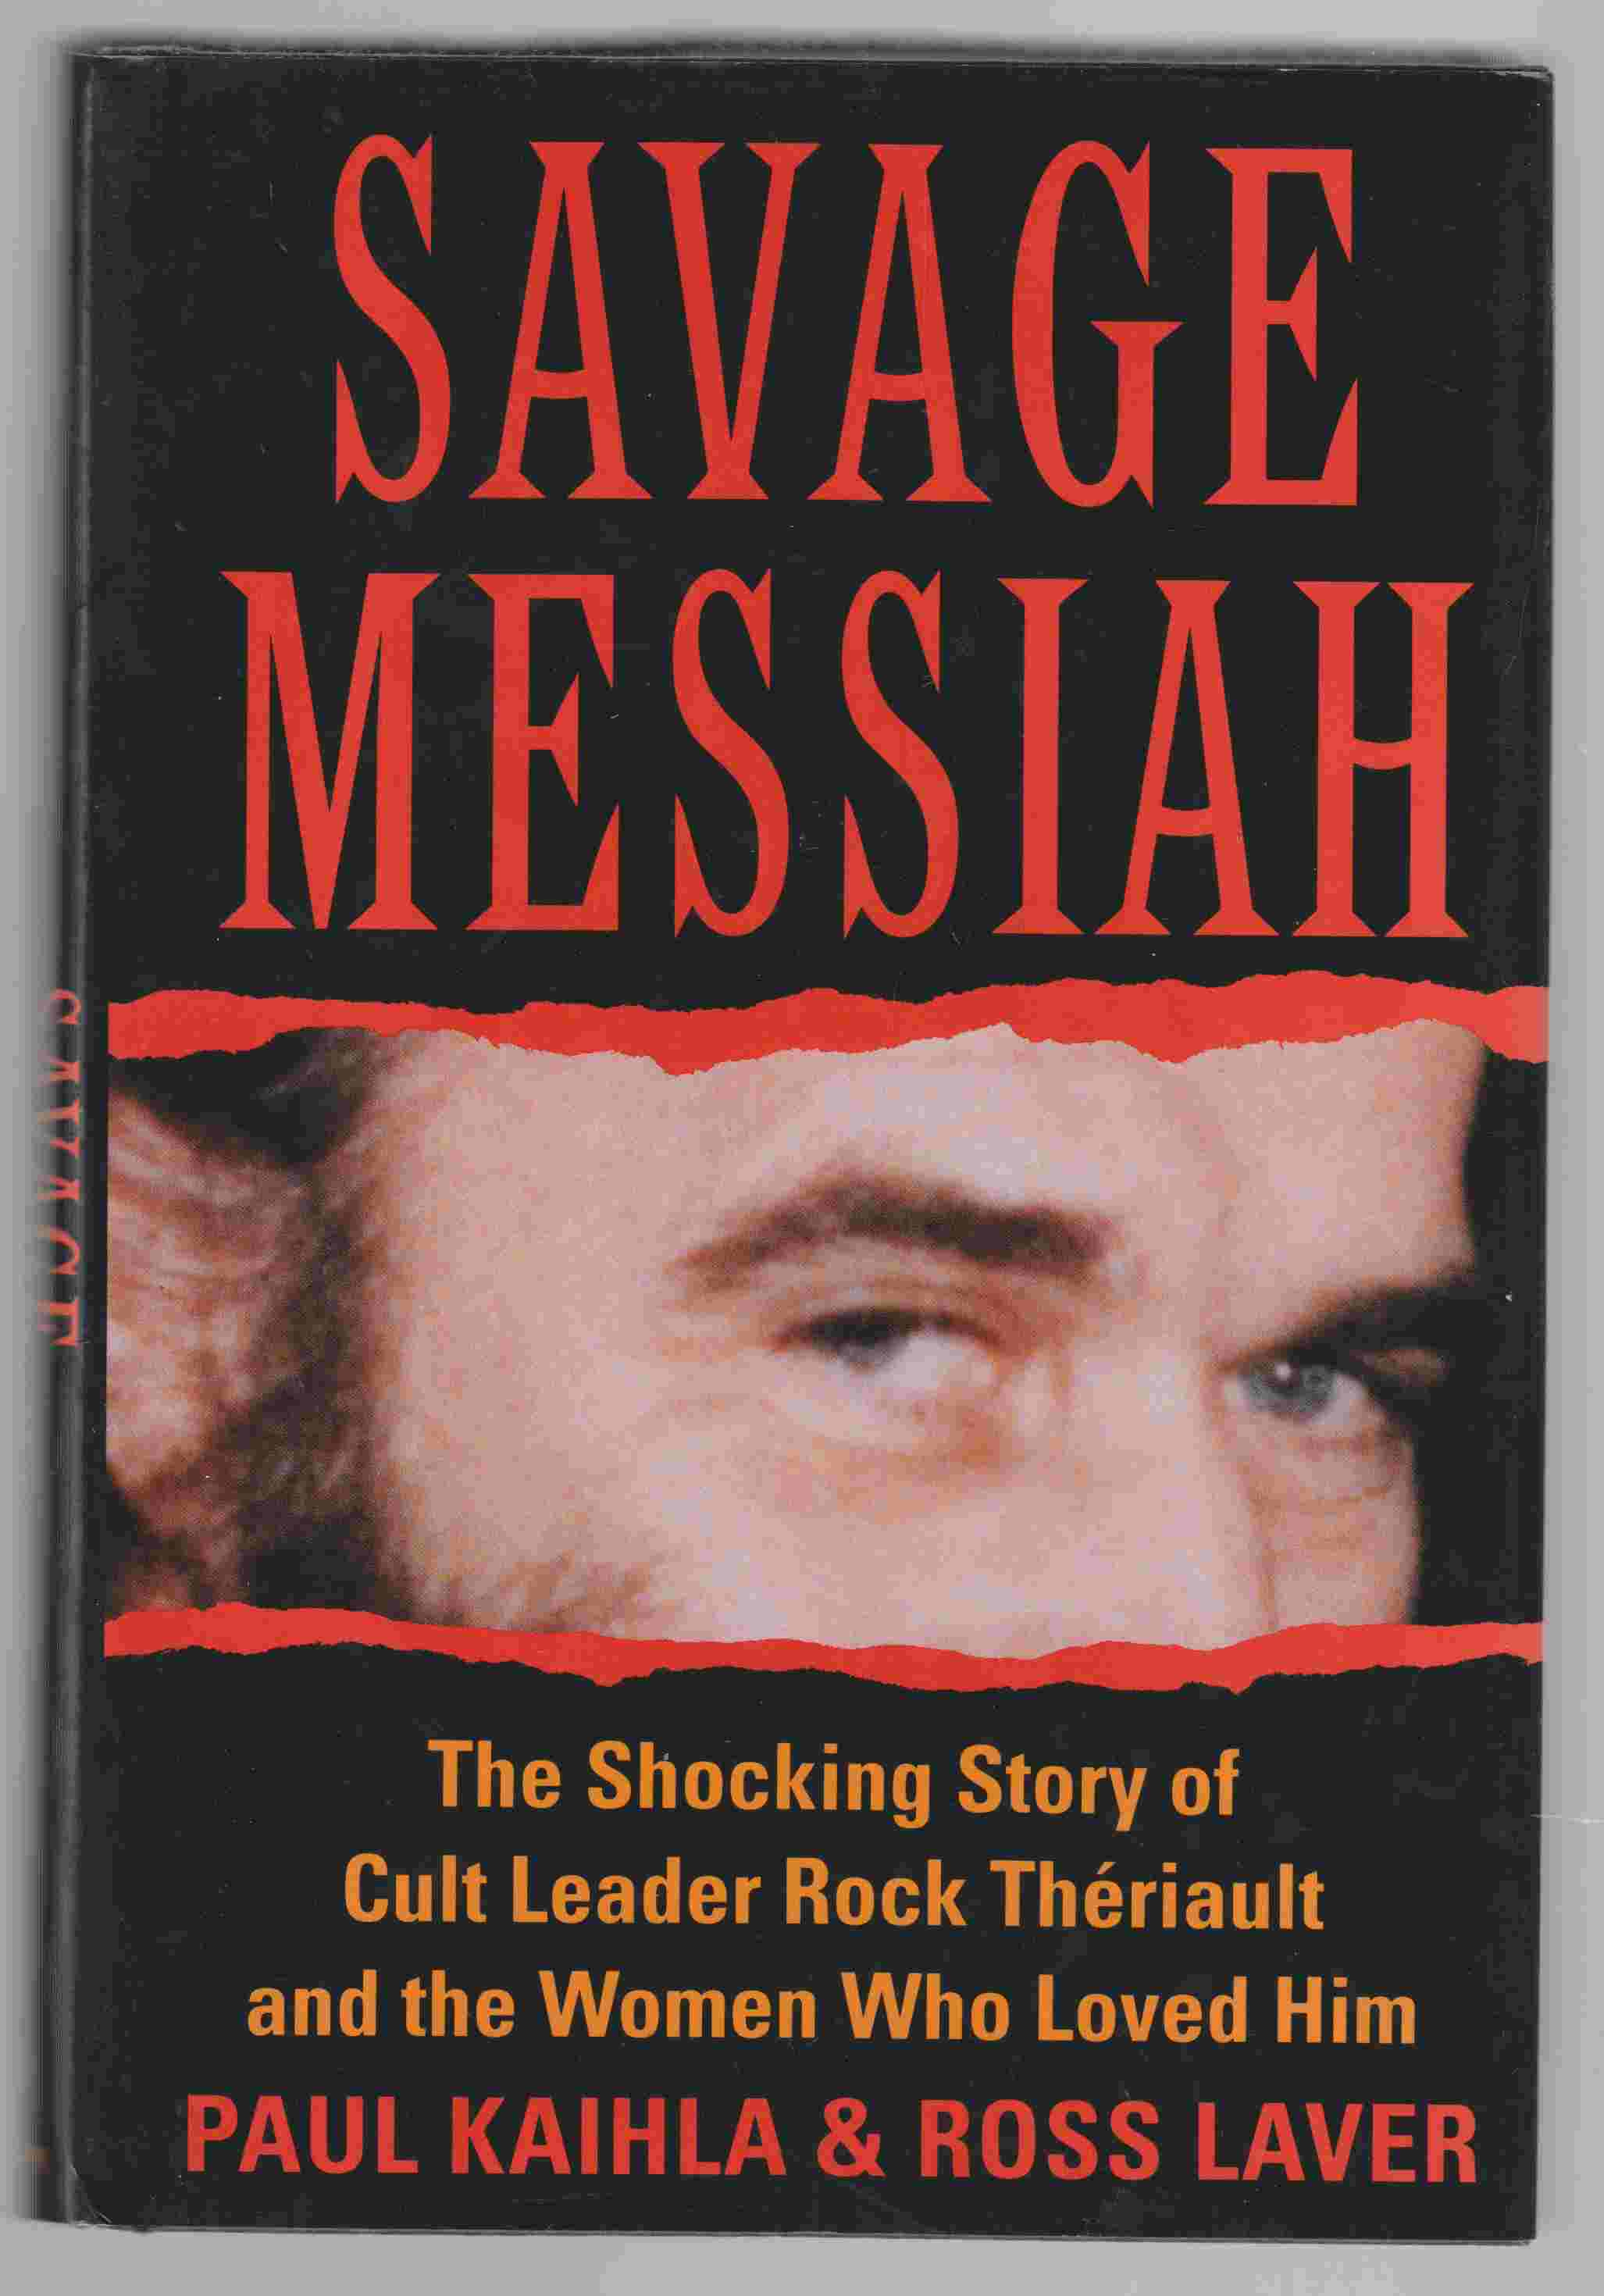 Image for Savage Messiah The Shocking Story of Cult Leader Rock Theriault and the Women Who Loved Him